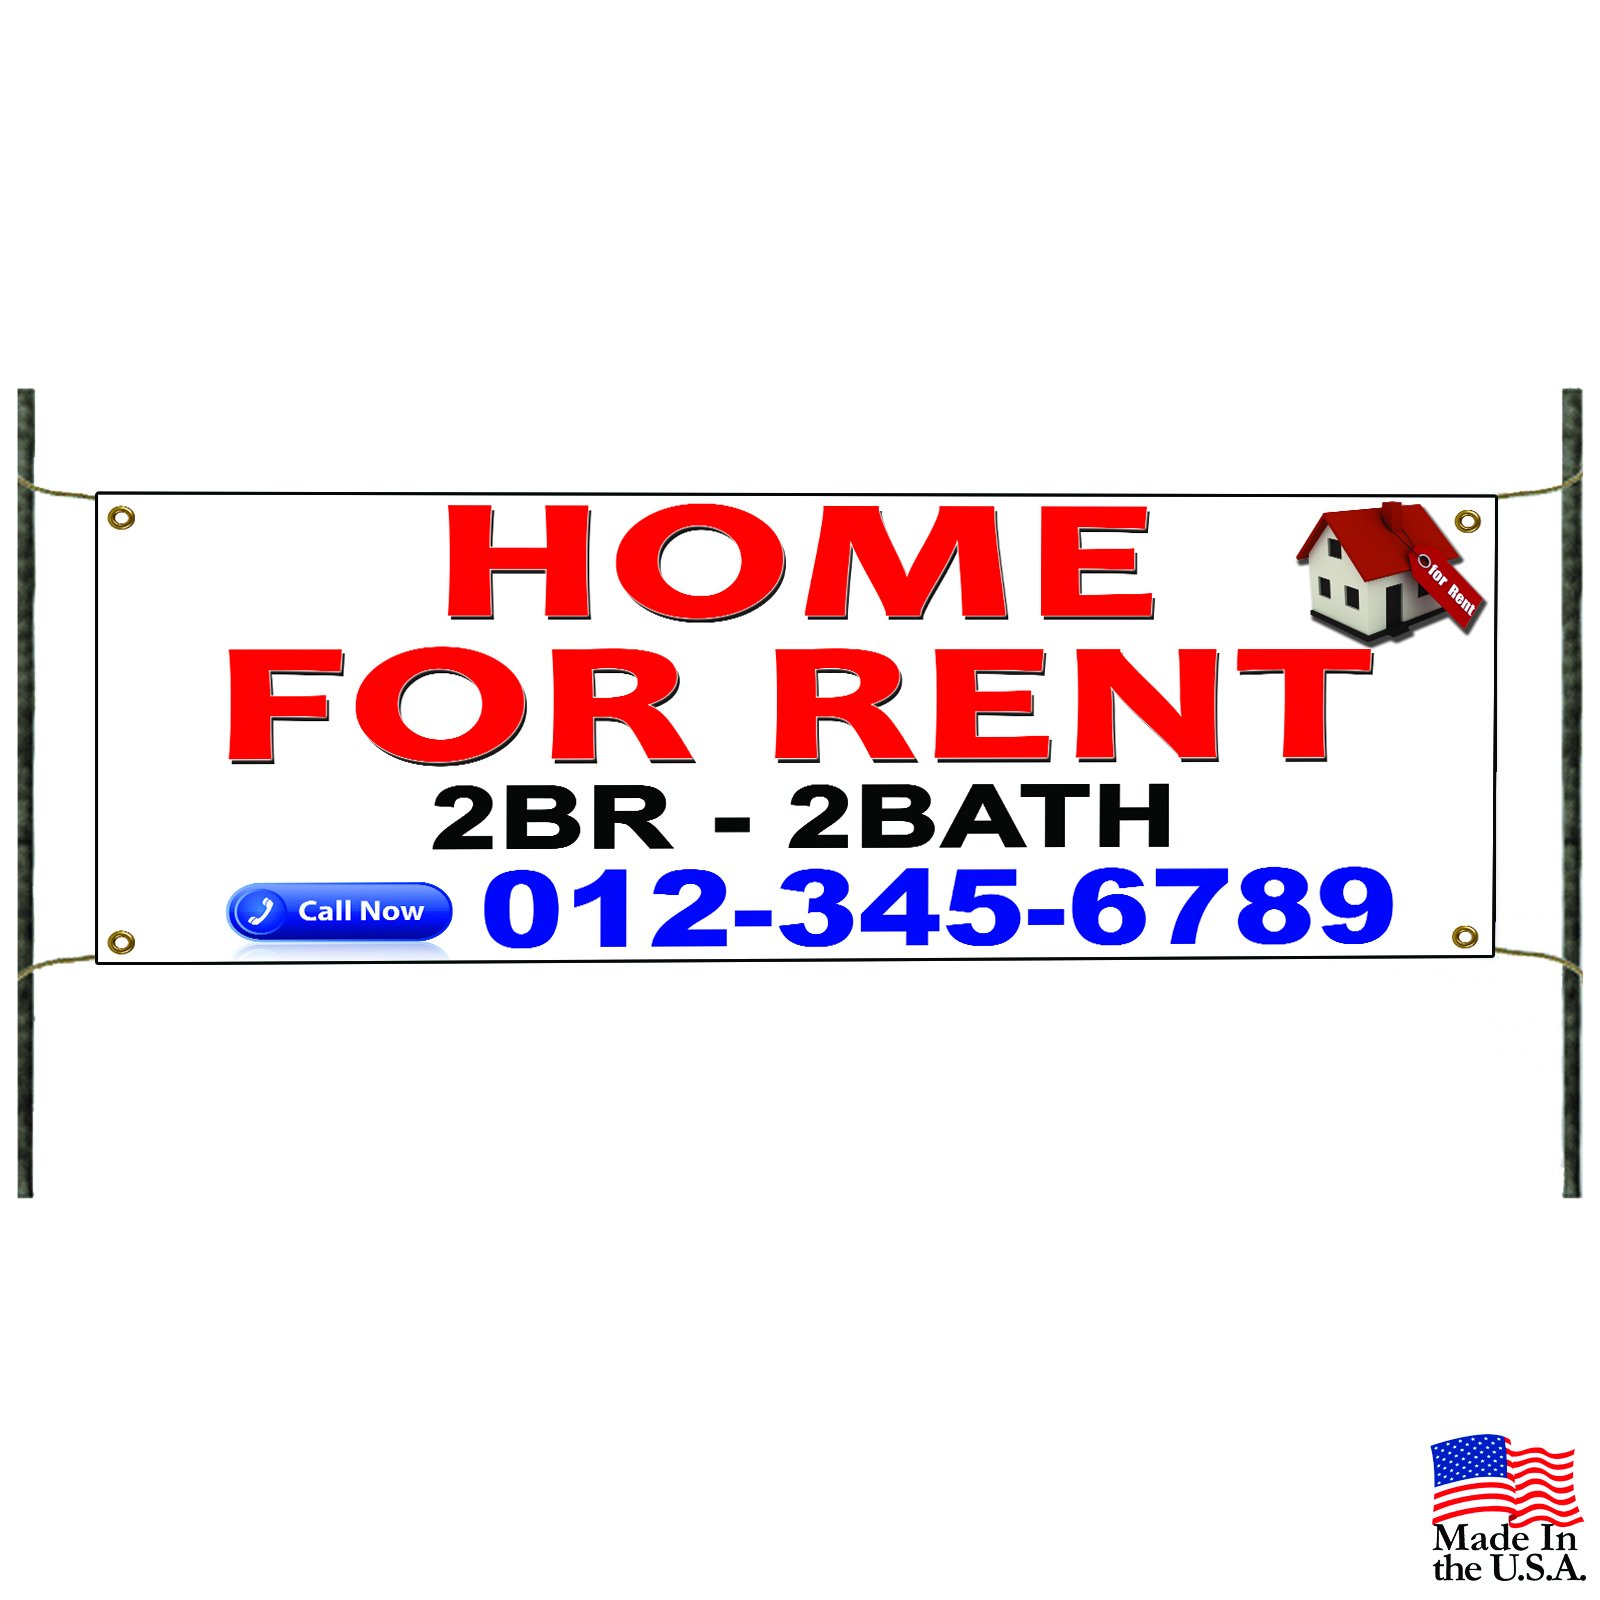 Home For Rent 2 Br-2 Bath Banner Sign Apartment Commercial Business Advertising